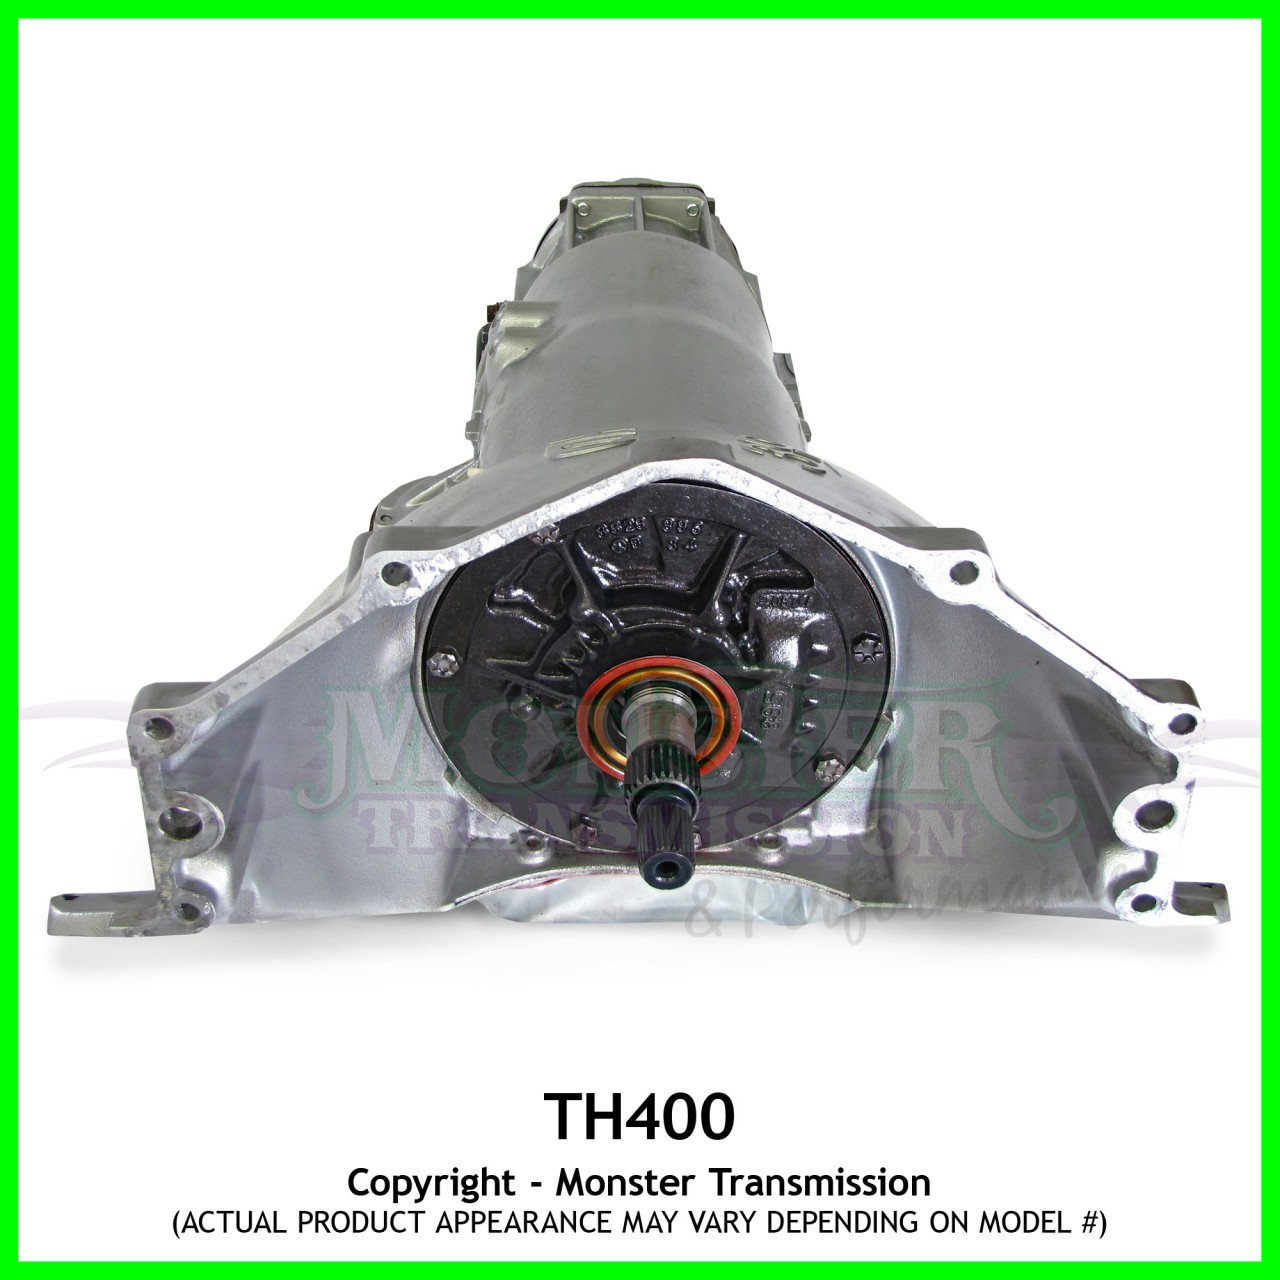 hight resolution of turbo 400 th400 transmission 4 tail rebuilt th400 rebuilt turbo 400 gm th400 chevy th400 buick th400 monster th400 transmission